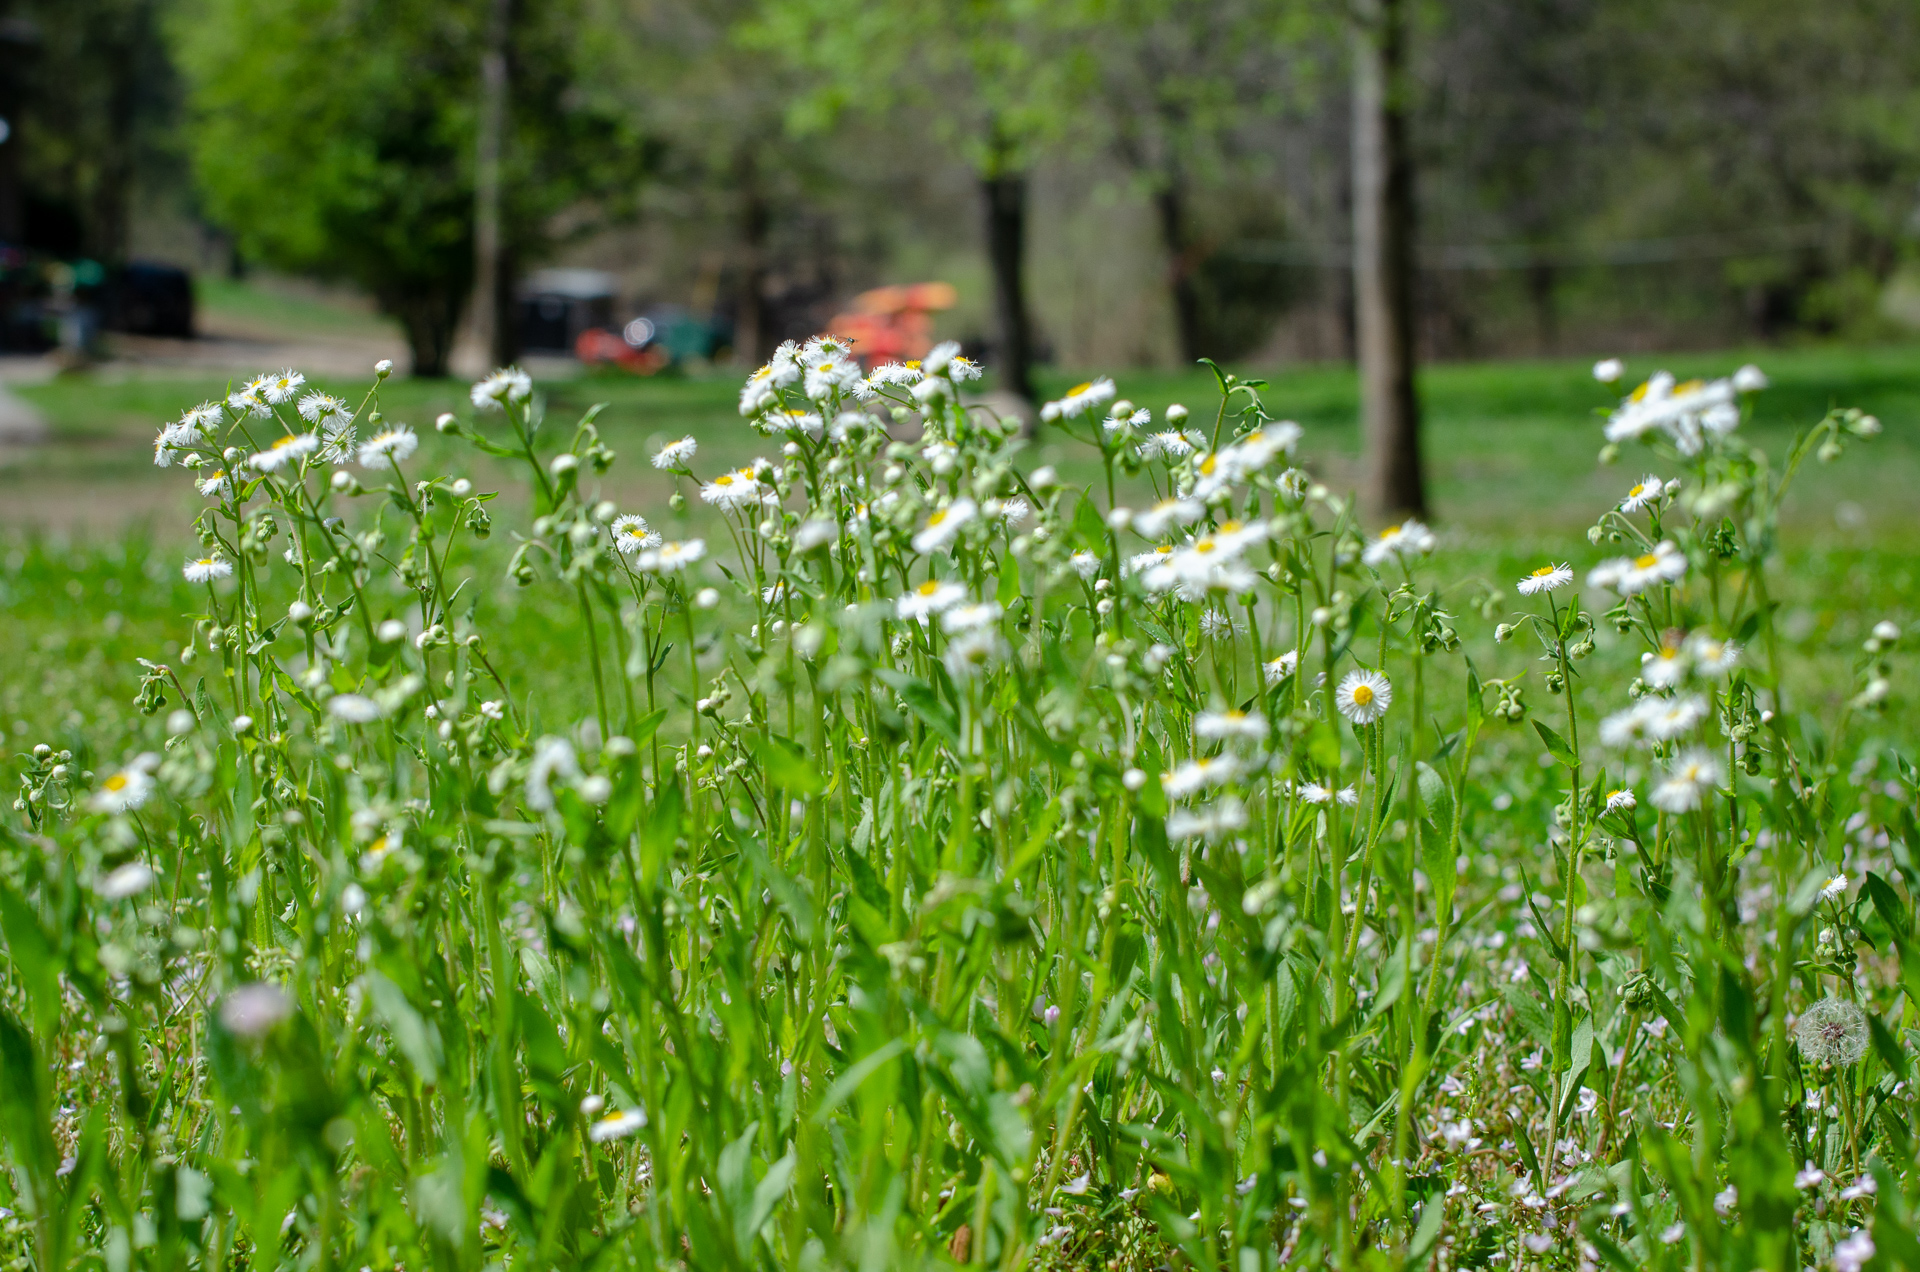 20190410_Marina_Wildflowers_1285.jpg